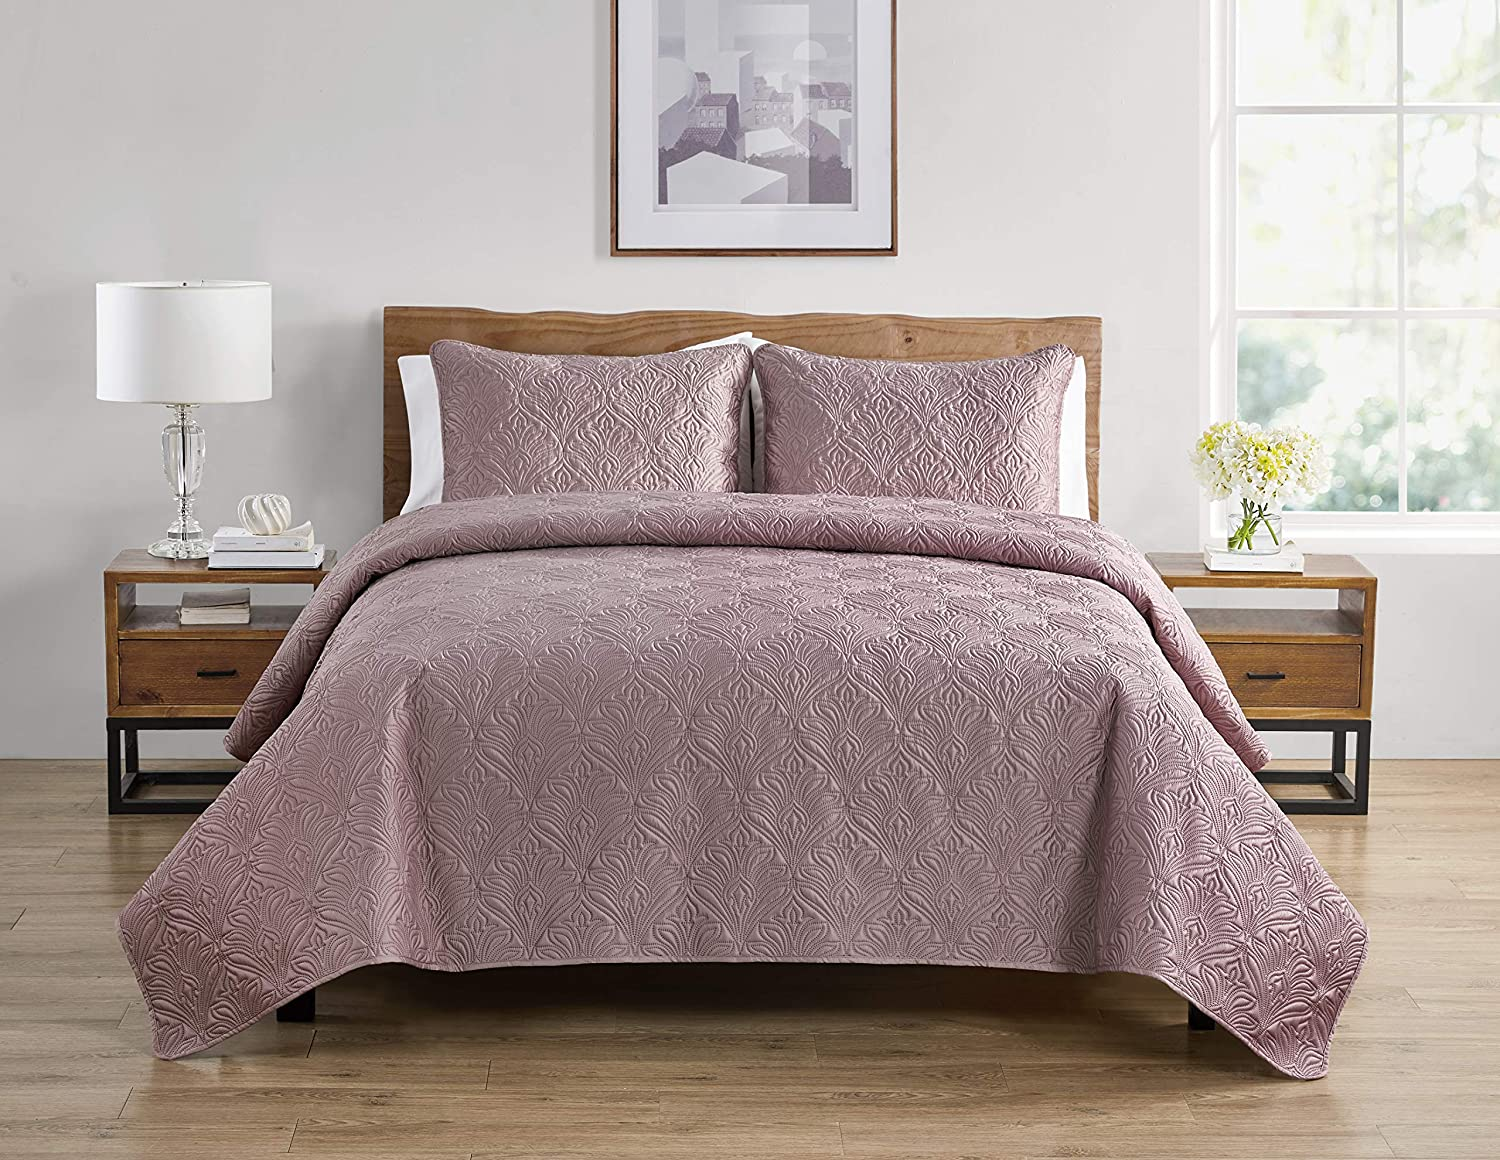 Tahari Home | Wendy Bedding Collection | Luxury Premium Ultra Soft Quilt Coverlet, Lightweight Comfortable 3 Piece Set, Elegant Modern Embossed Charmeuse Print, Full/Queen, Rose